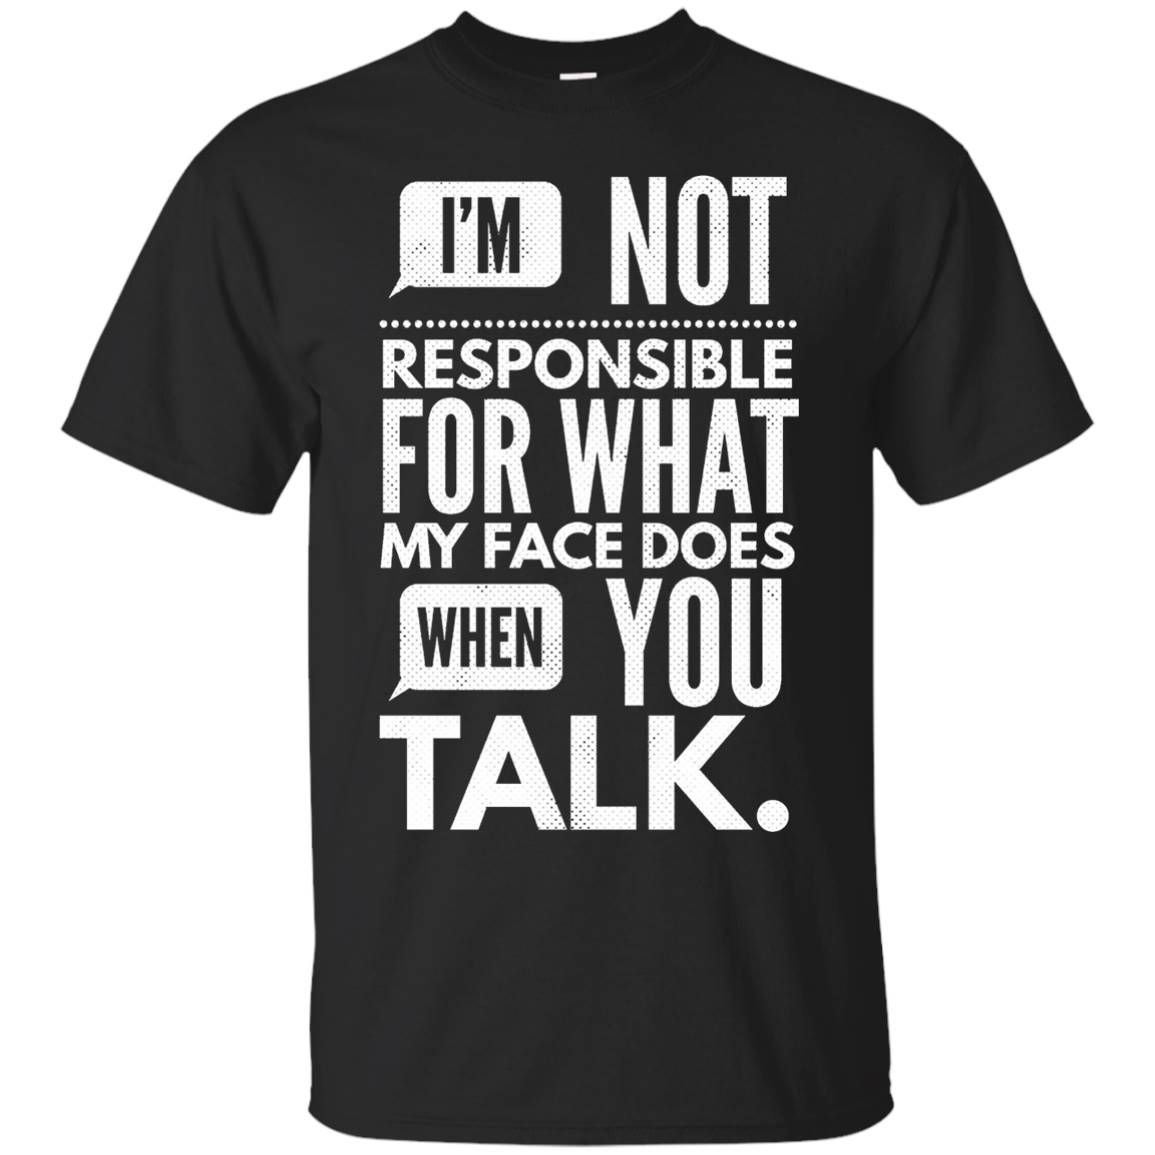 I'm Not Responsible for What Happens to my Face Shirt